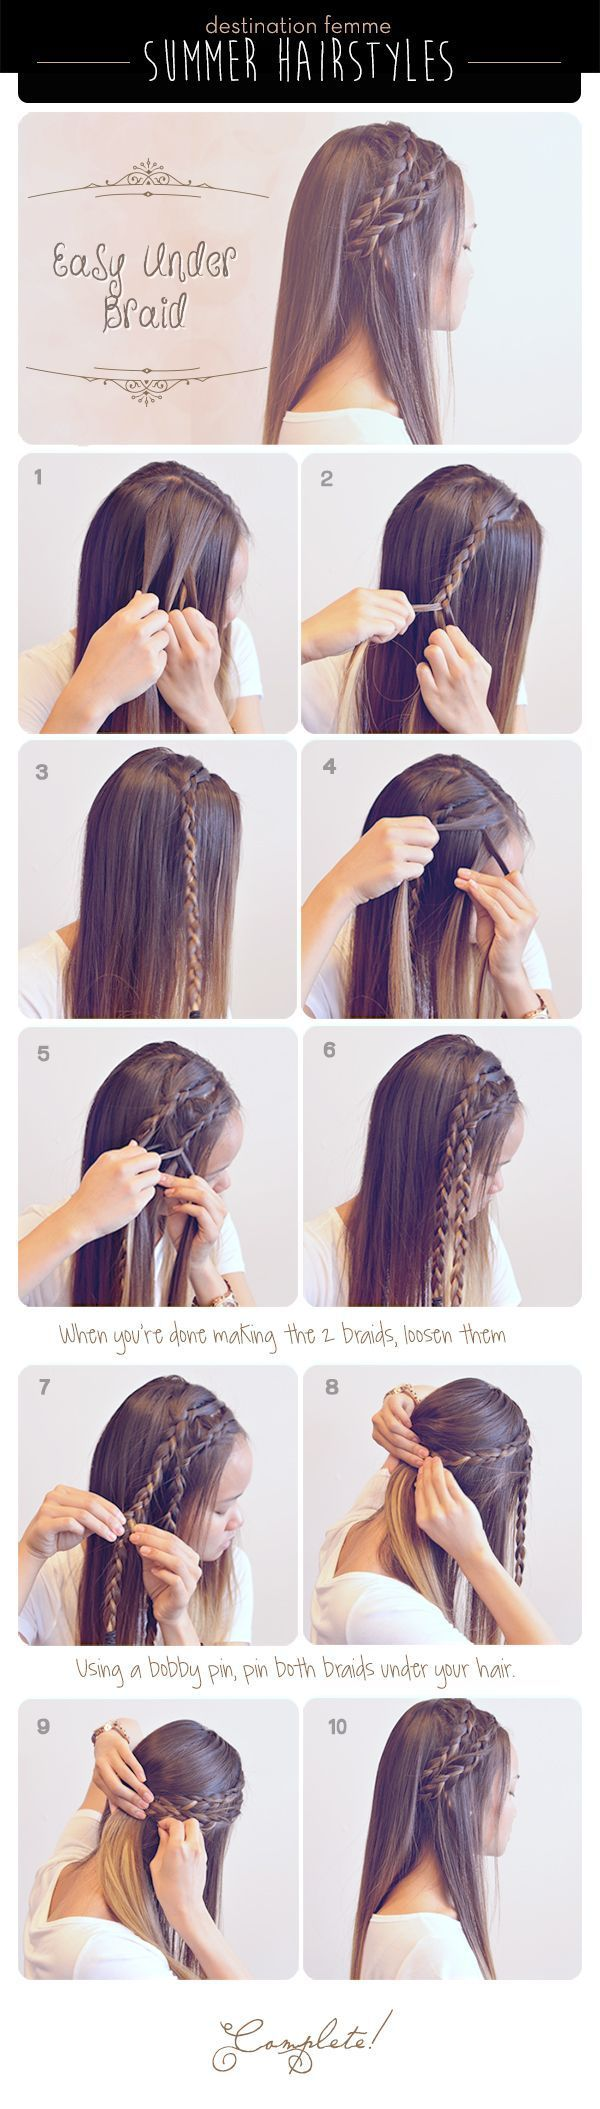 summer braid hairstyle for summer pictures, photos, and